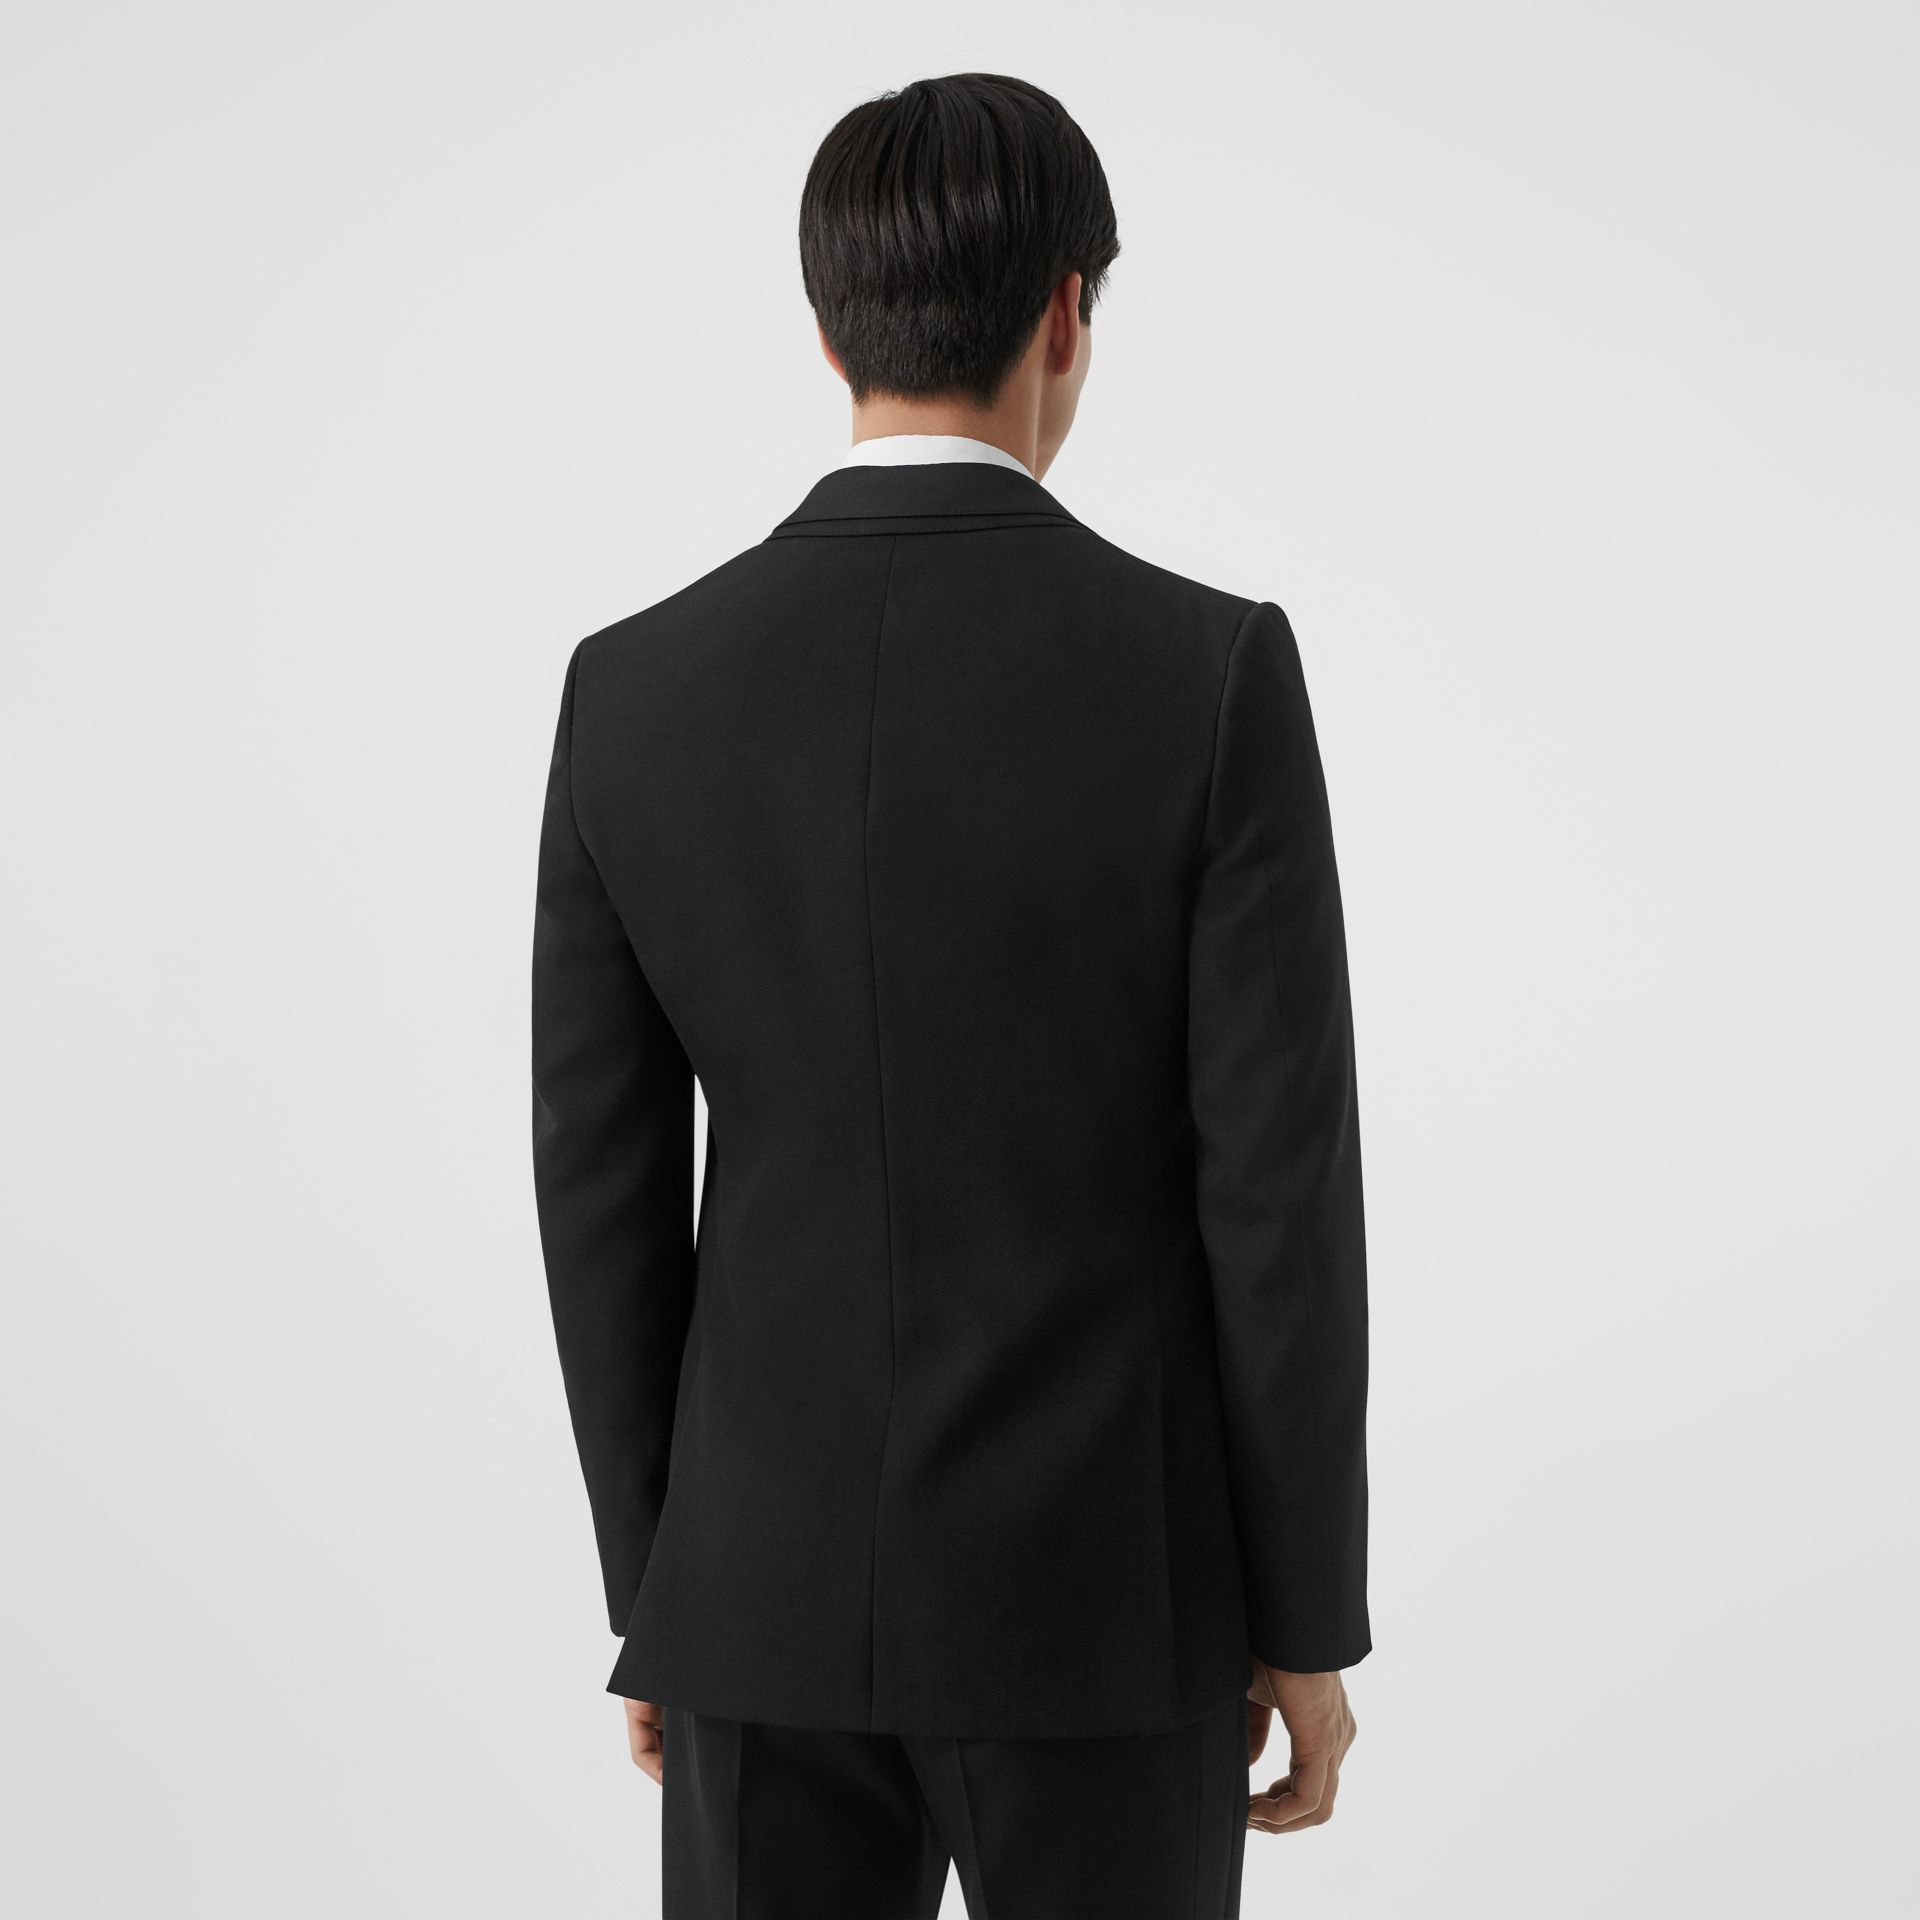 English Fit Reconstructed Wool Tailored Jacket in Black - Men | Burberry United Kingdom - gallery image 2